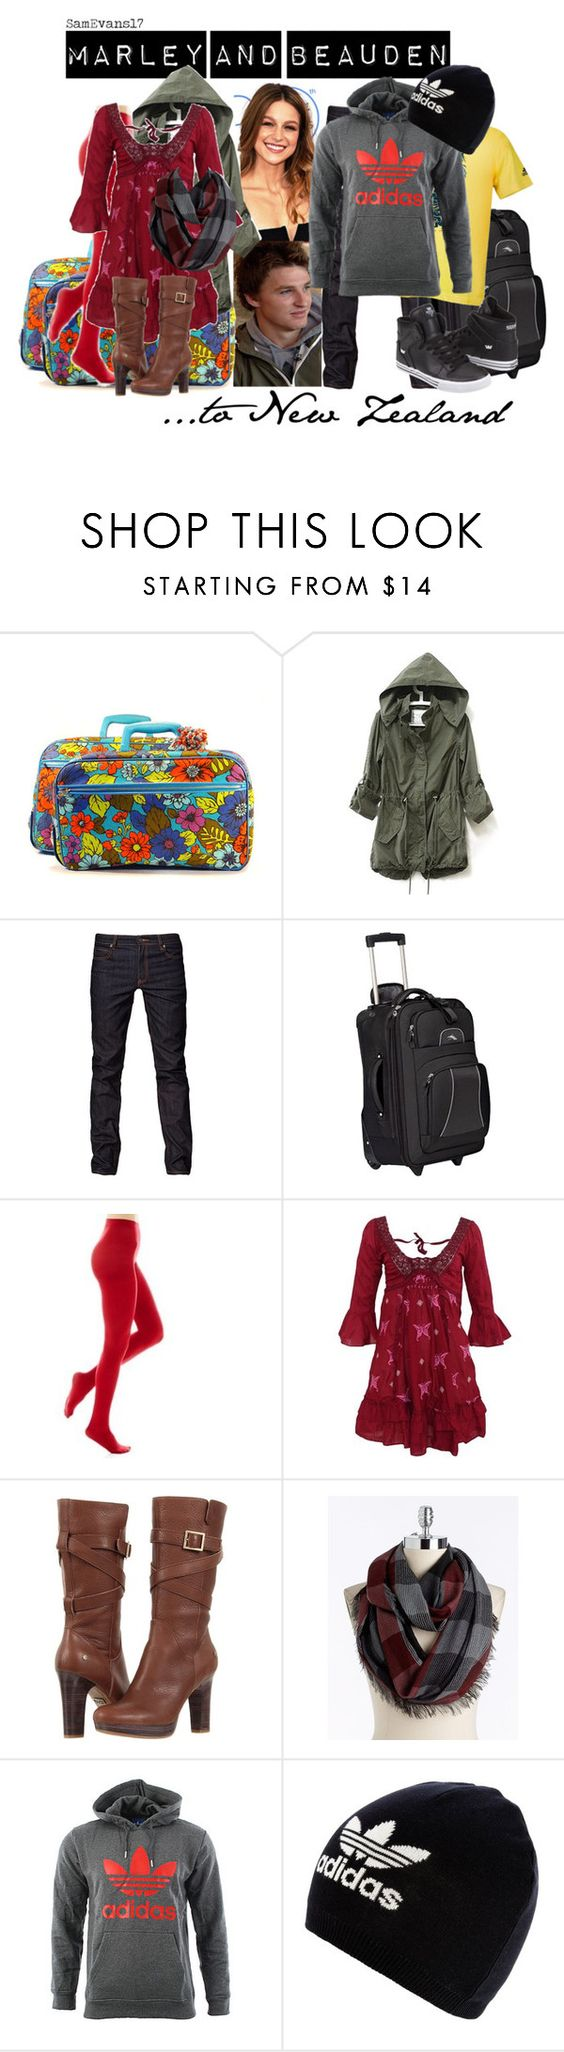 """Marley and Beauden - To New Zealand"" by samevans17 ❤ liked on Polyvore featuring Retrò, Cheap Monday, High Sierra, Mixit, Odd Molly, UGG Australia, Cejon, adidas, adidas Originals and Supra"